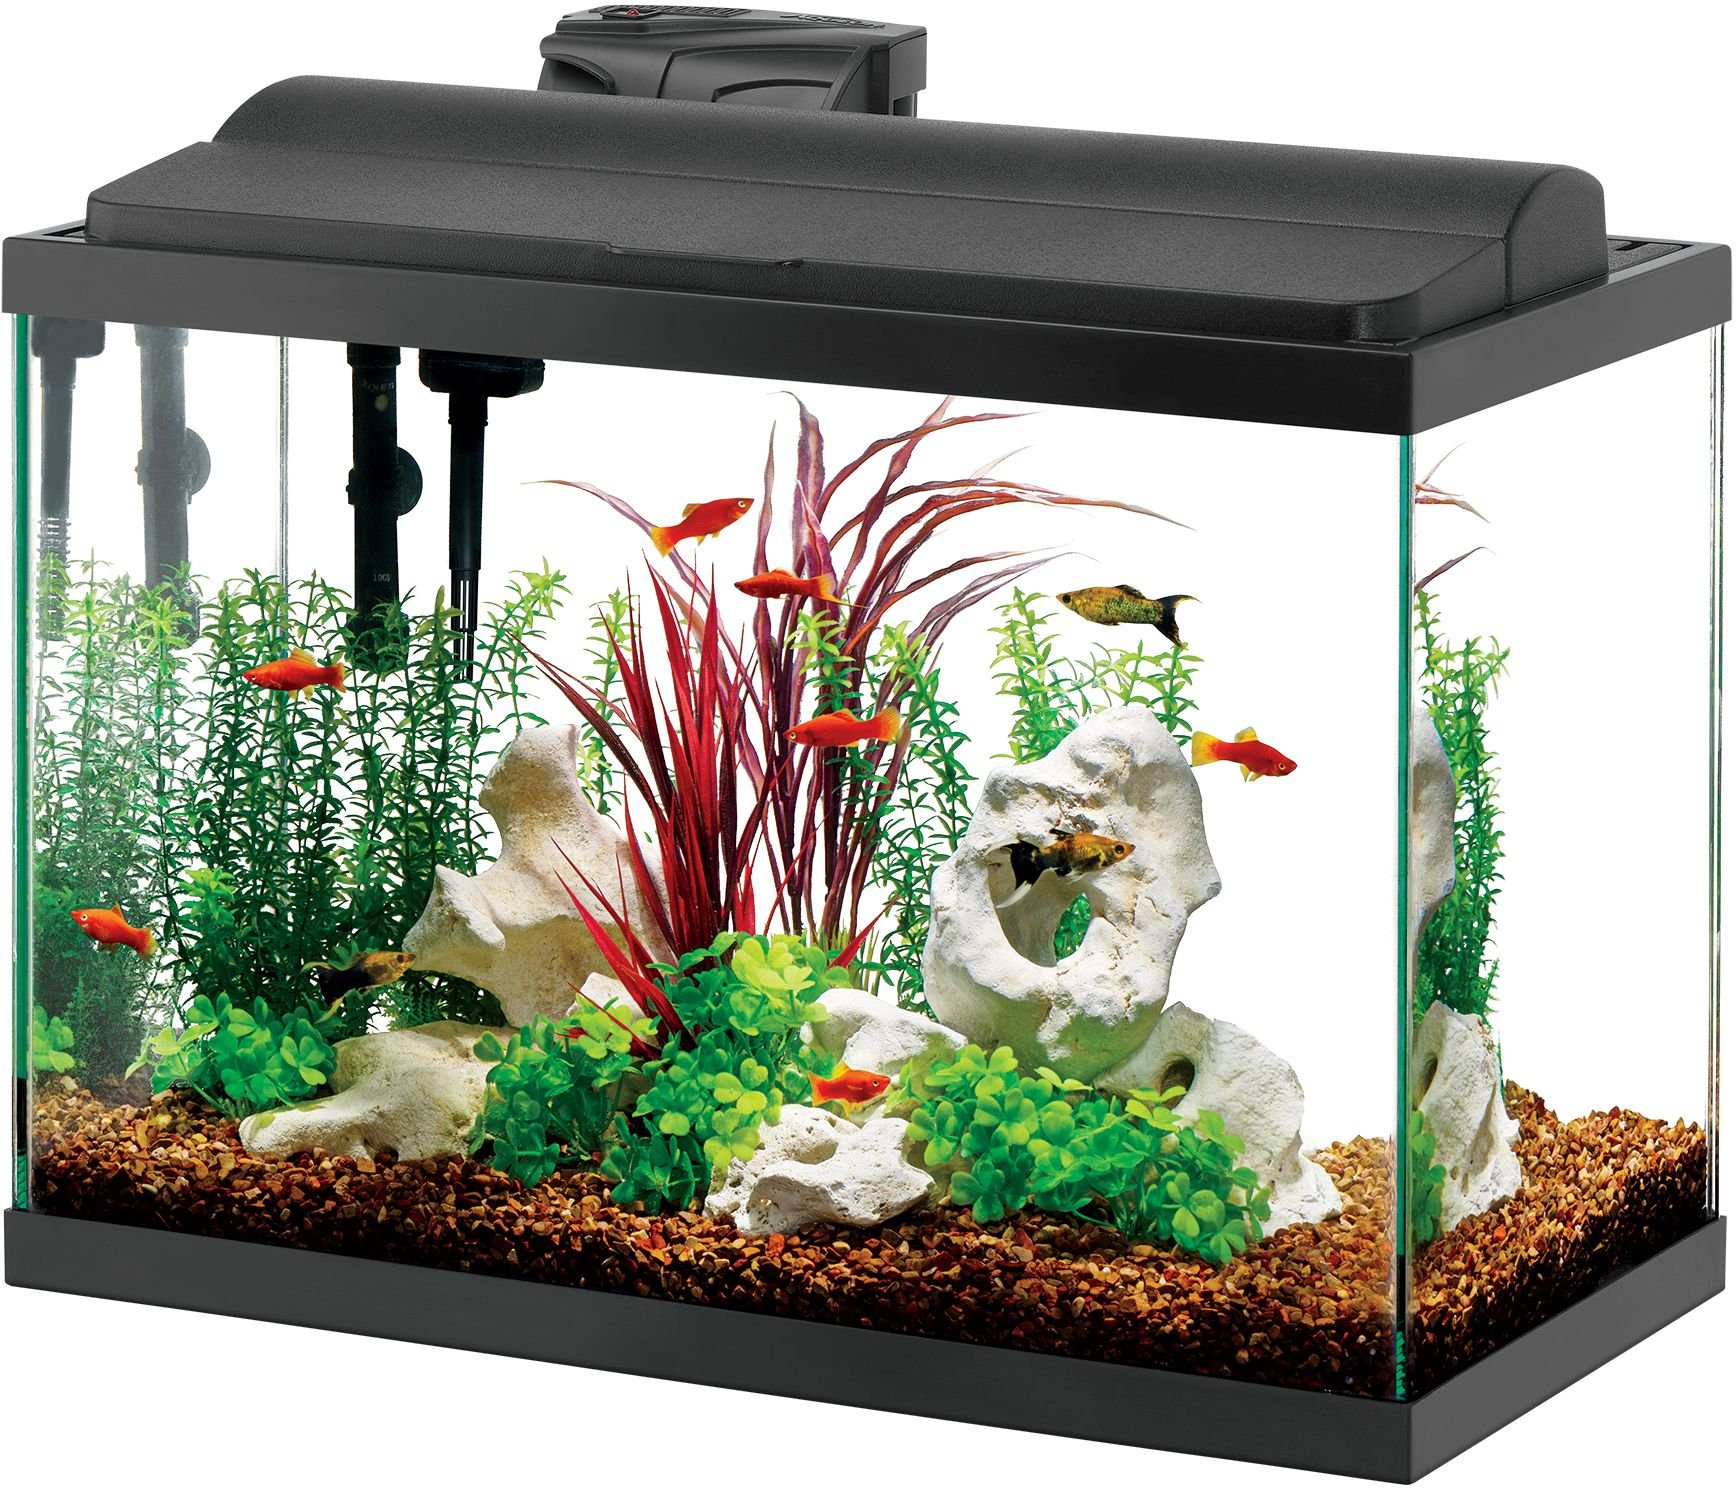 Cheap Aqueon Aquarium Light, find Aqueon Aquarium Light